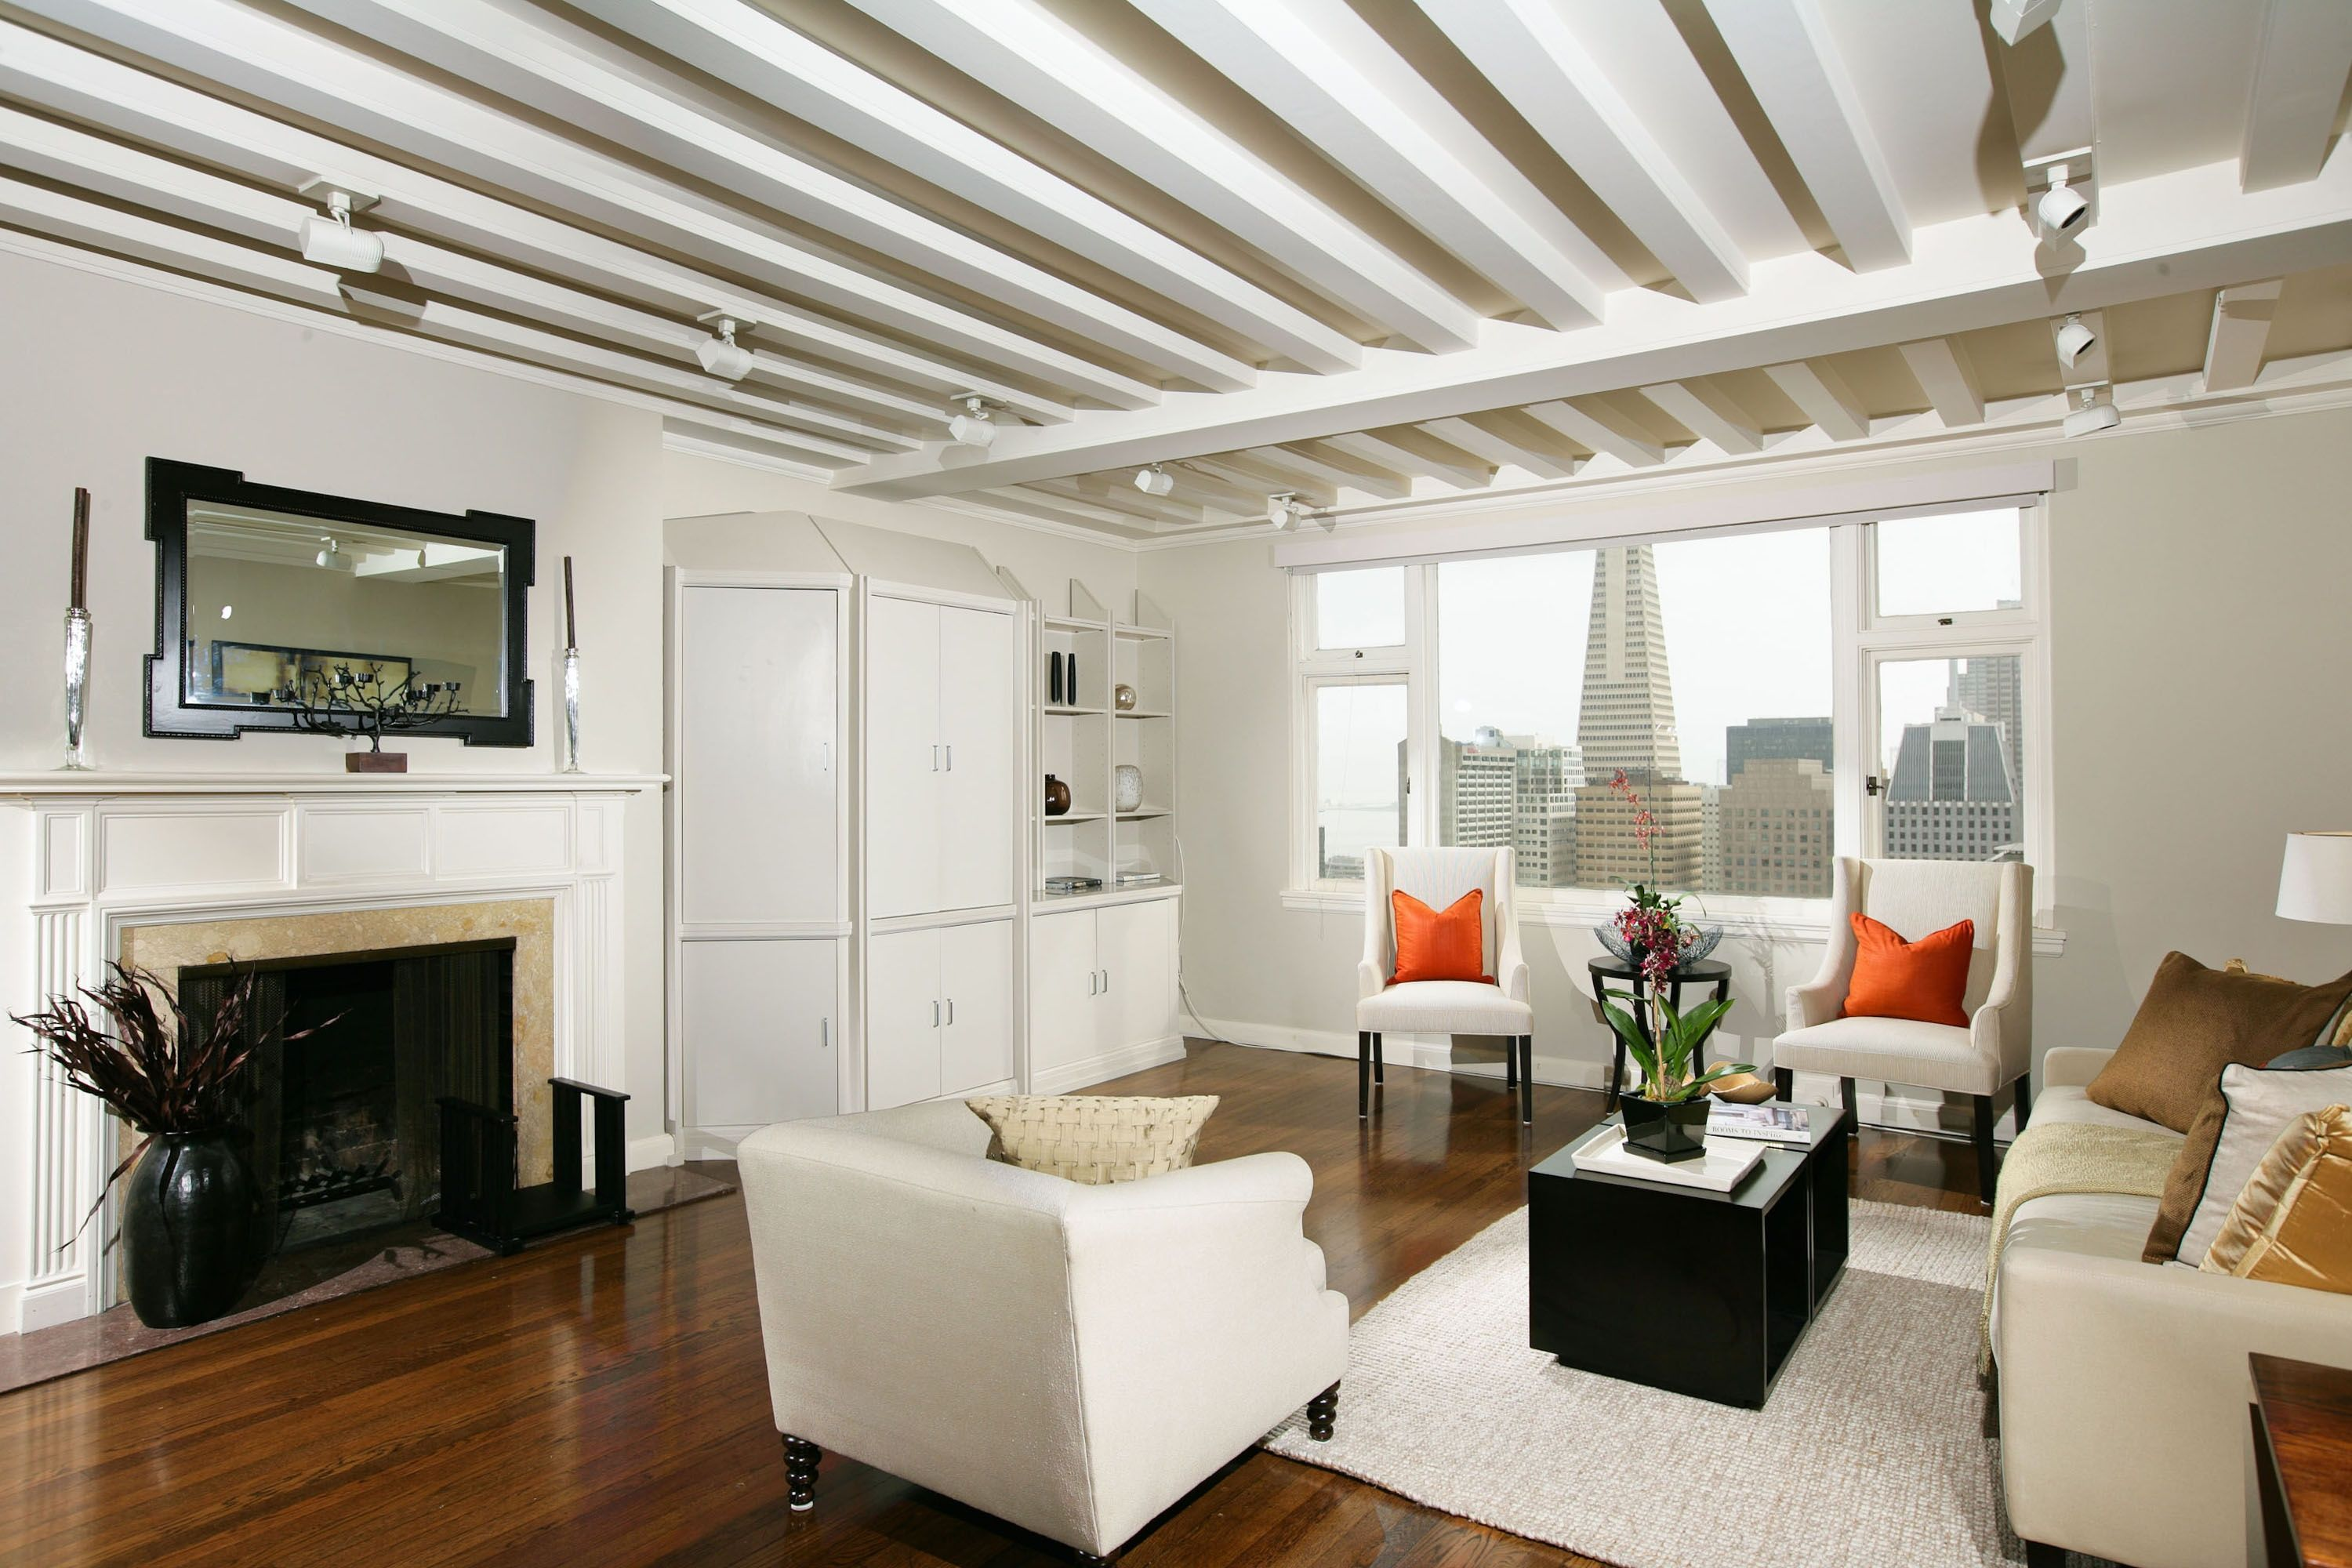 Nob Hill View Condo | Staged Living Rooms | Pinterest | Condos and Stage